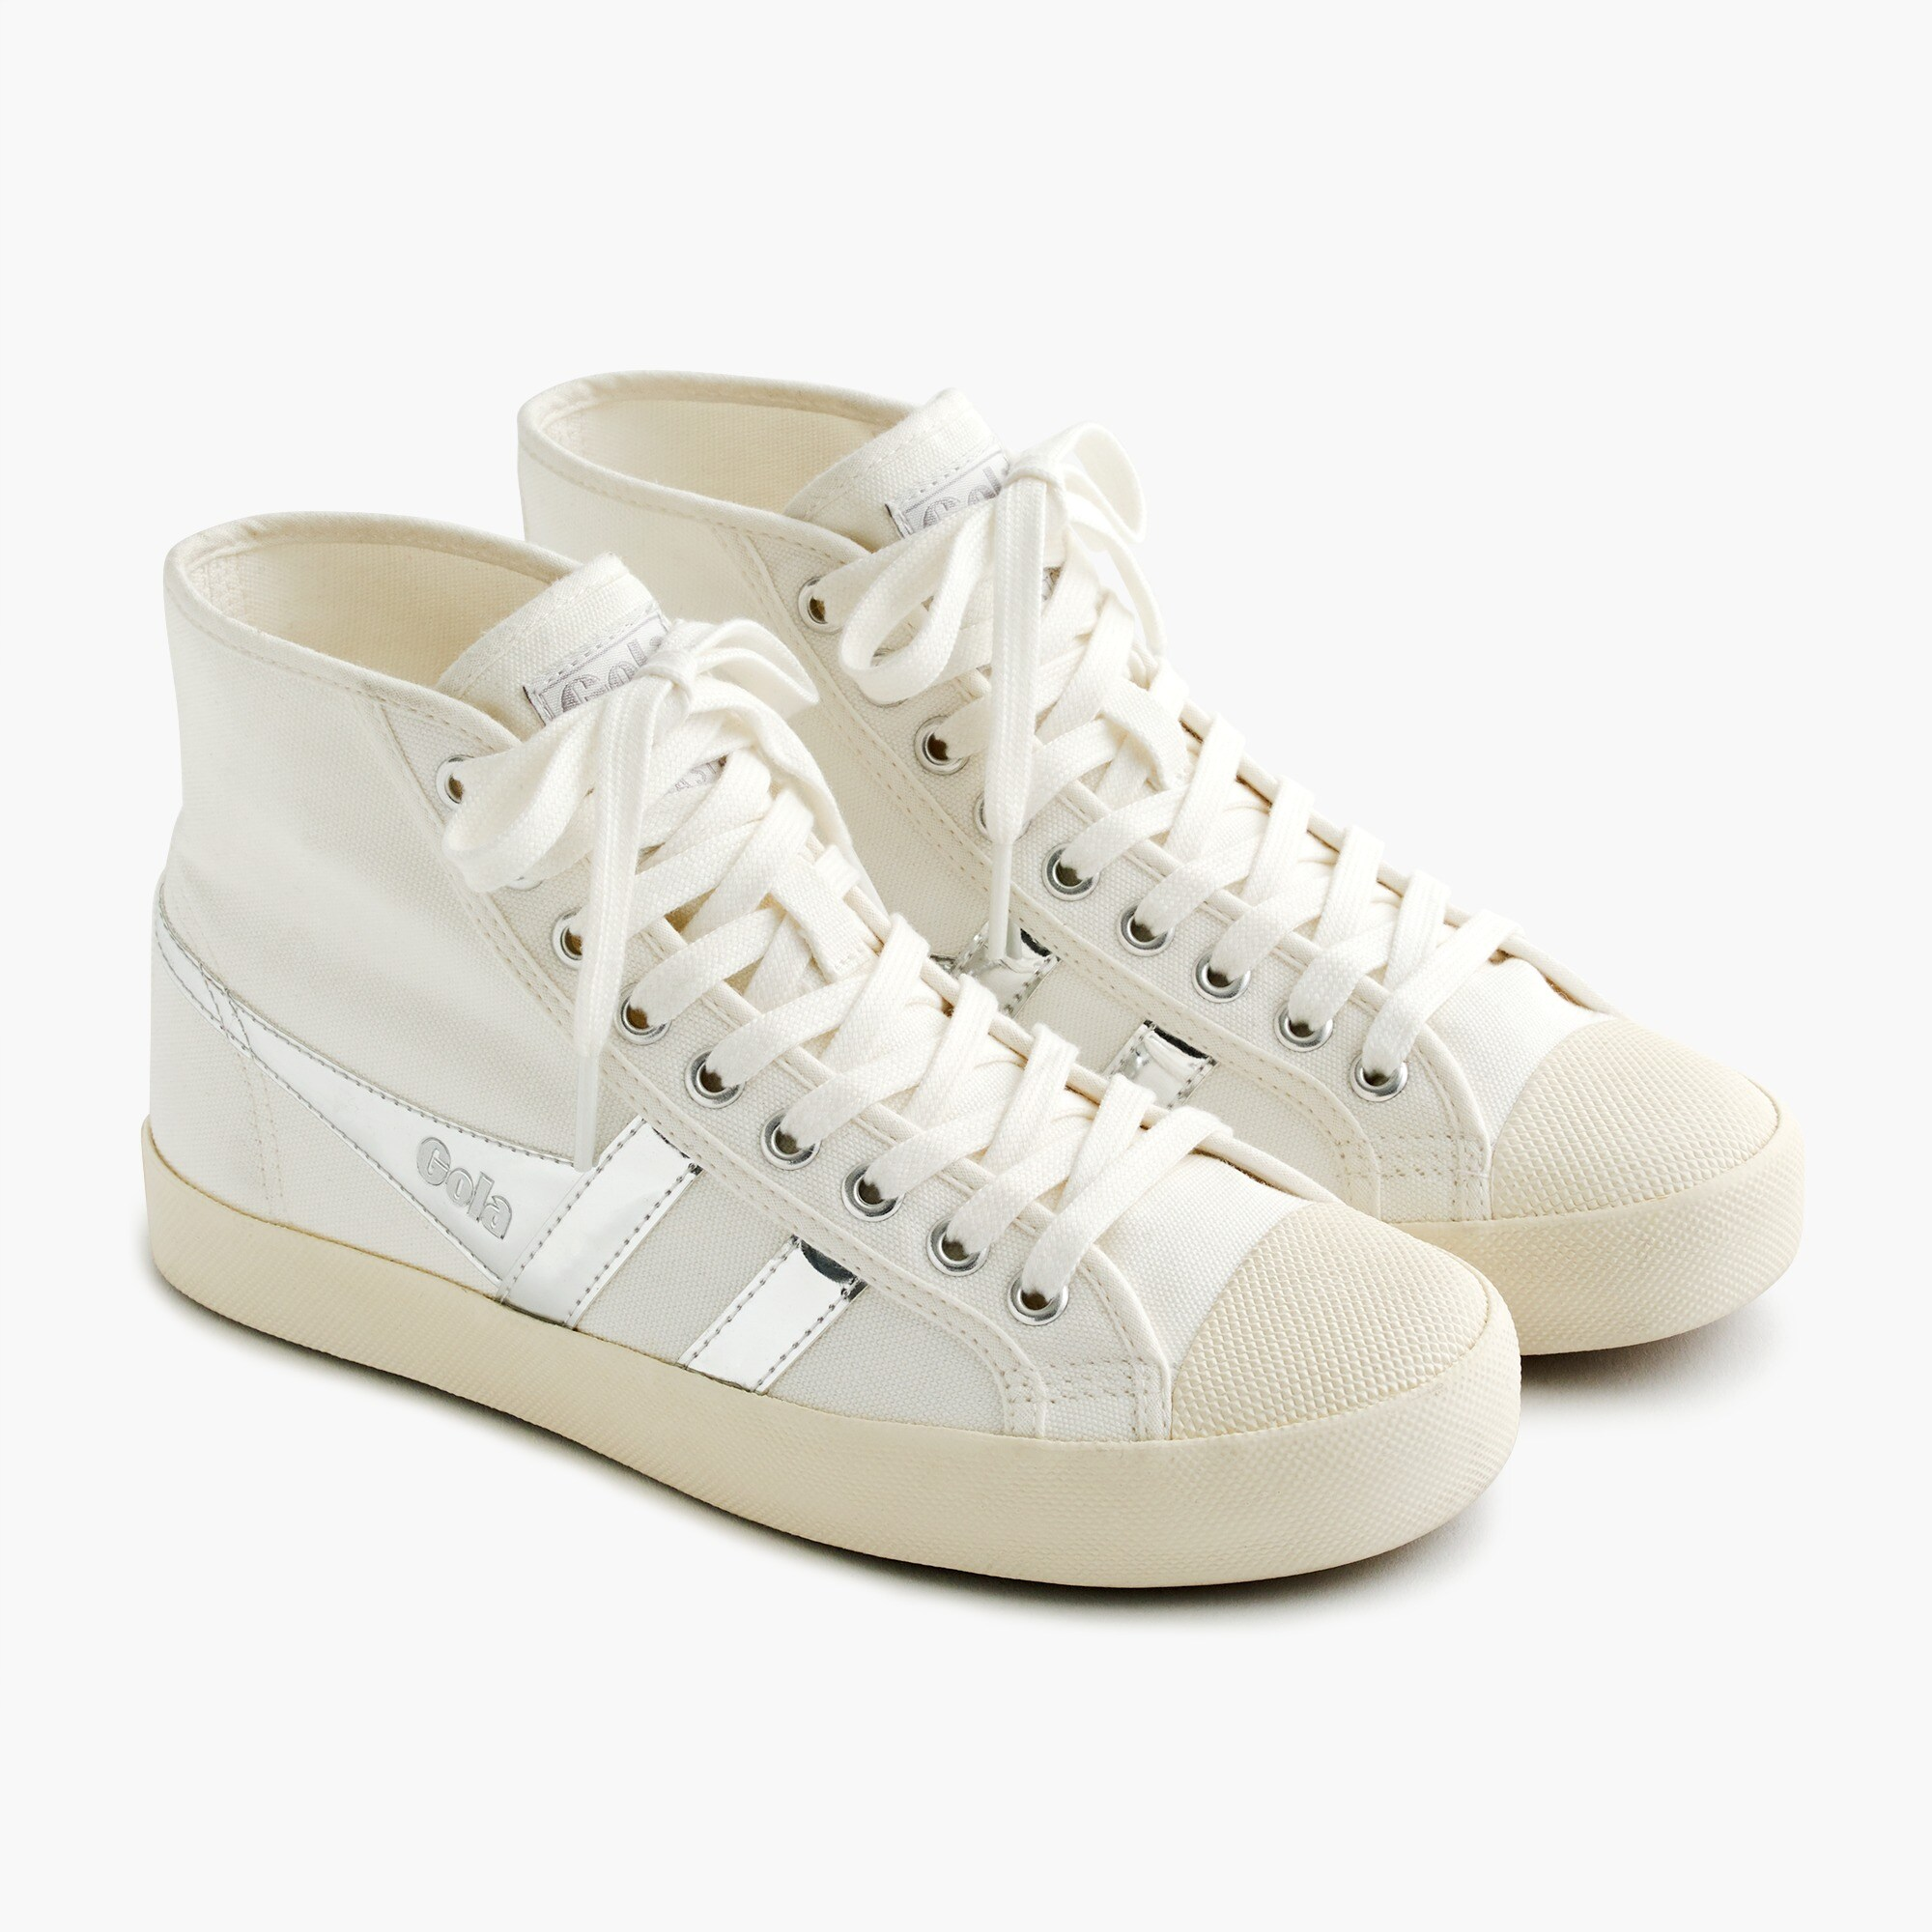 women's gola® for j.crew coaster high-top sneaker - women's sneakers